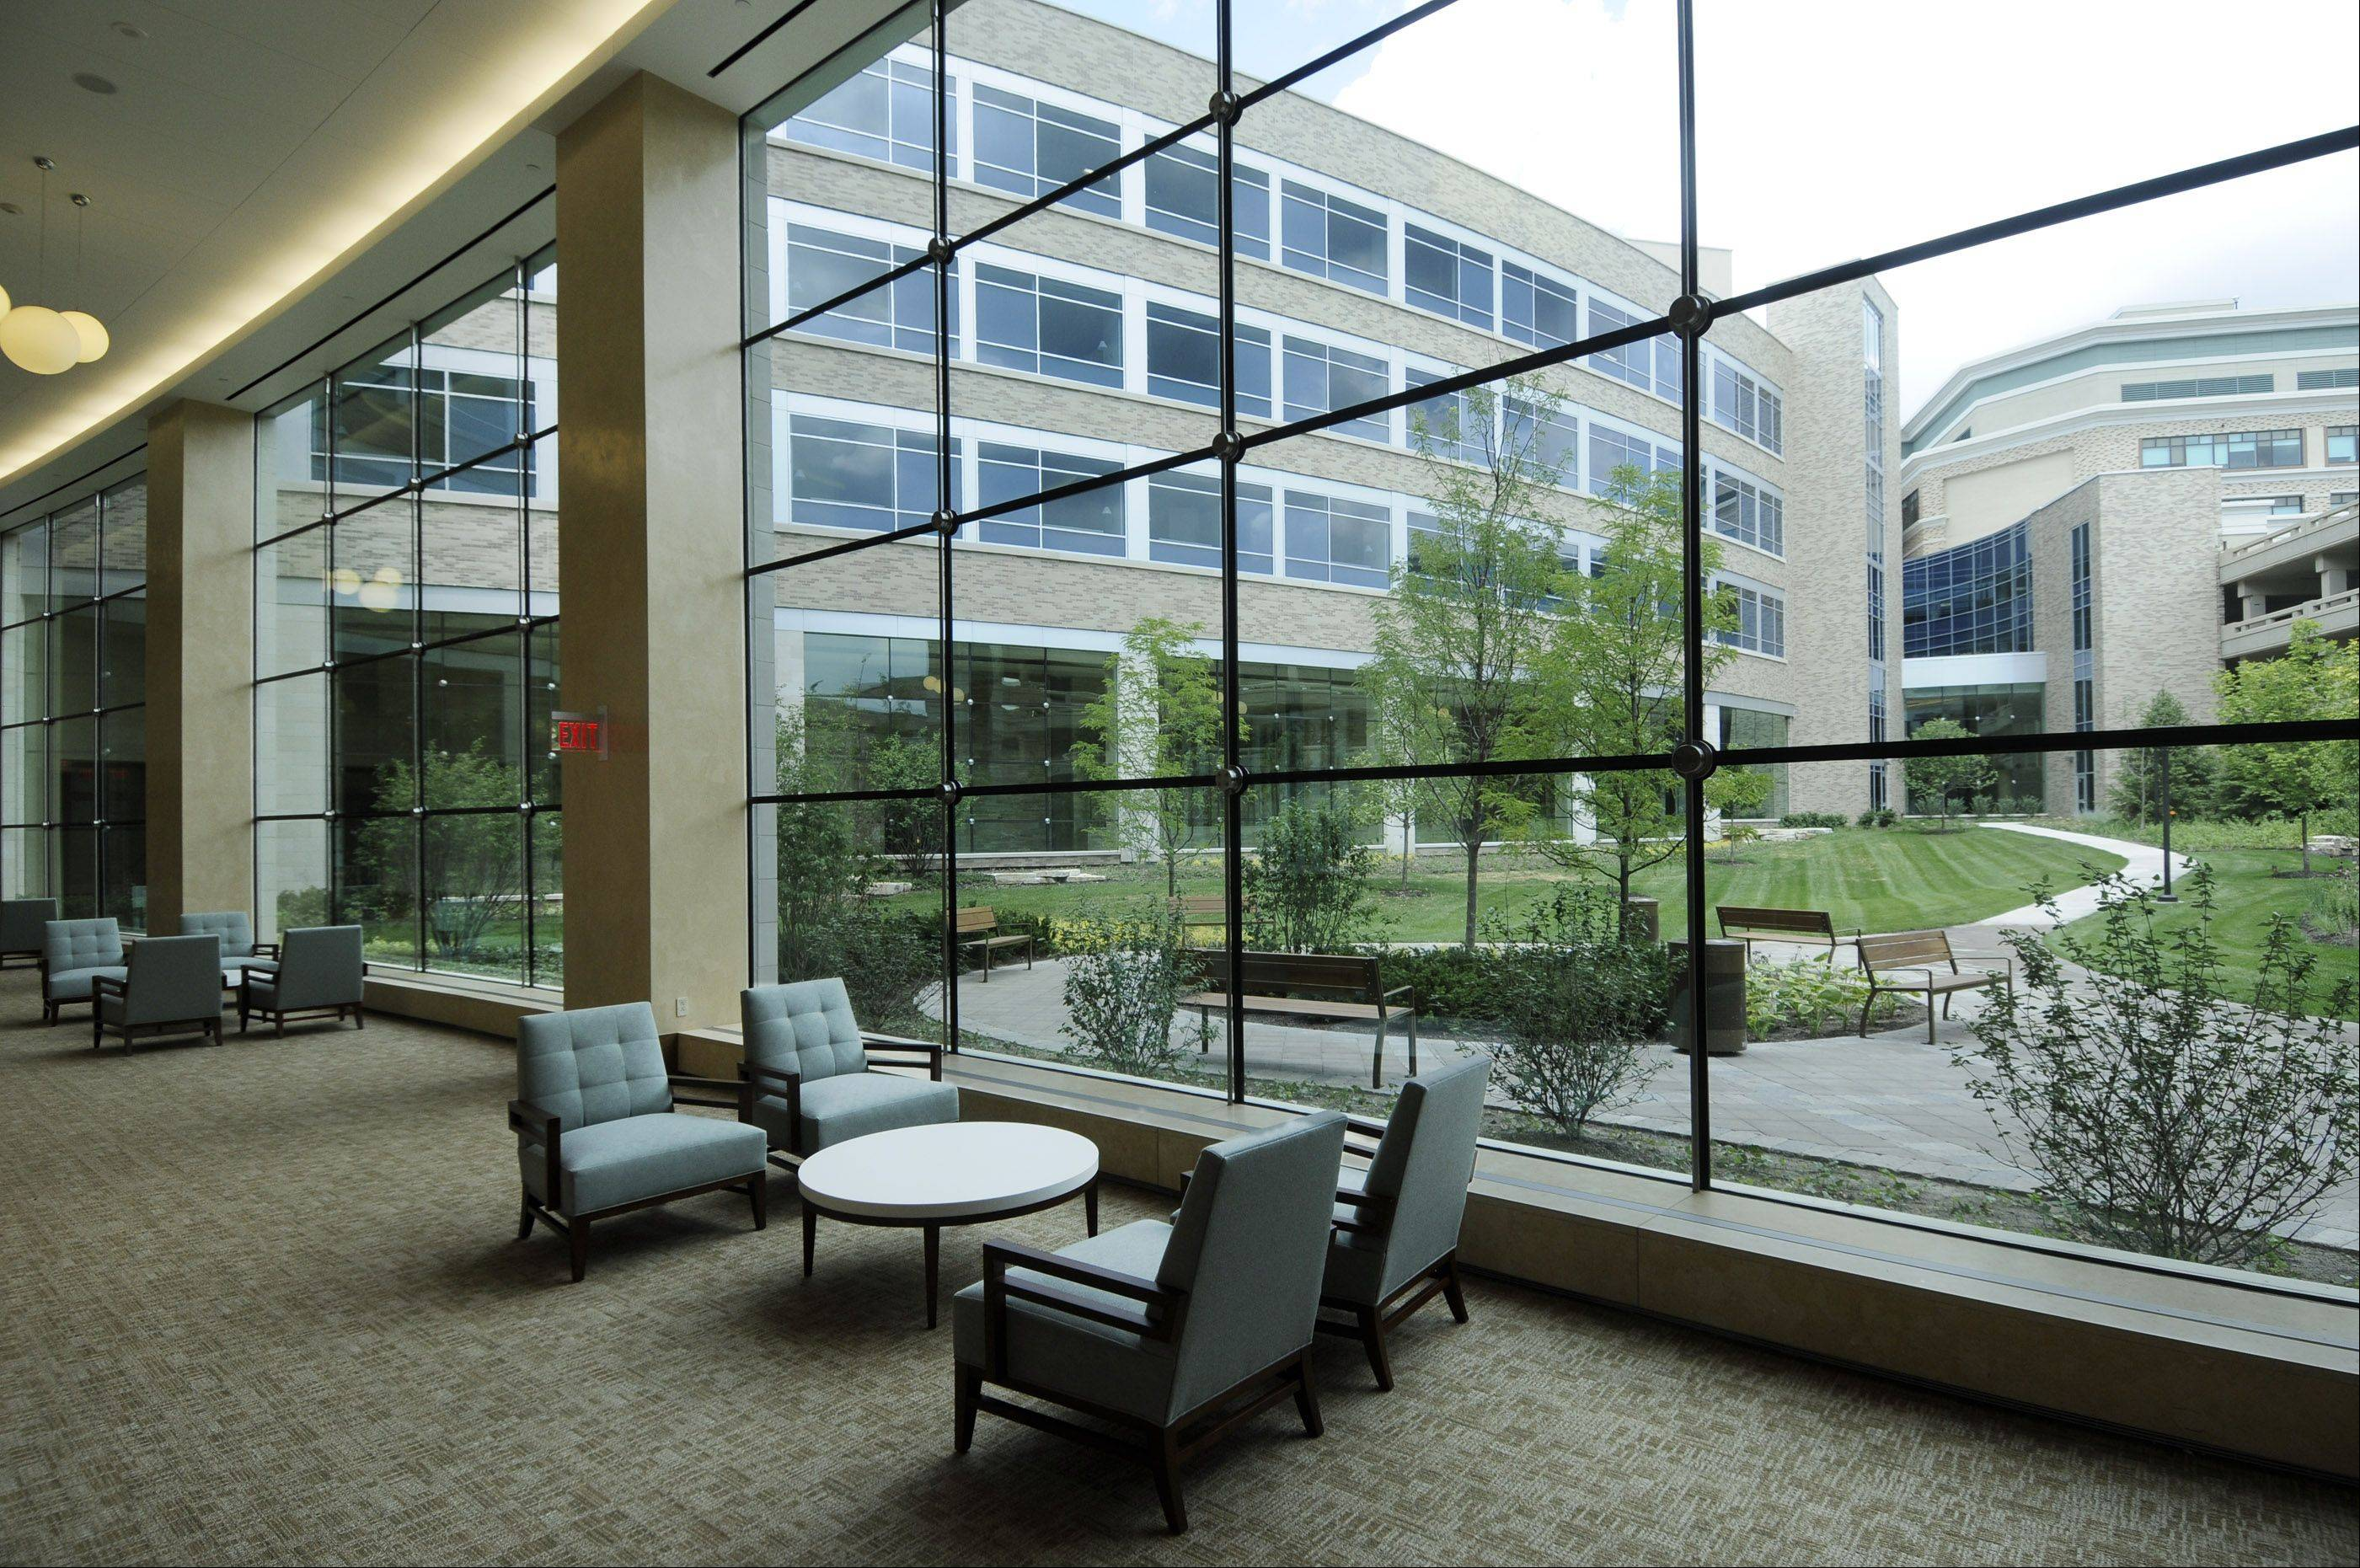 The new wing at Central DuPage Hospital in Winfield will have a centrally located courtyard with a sculpture to be added in the fall.